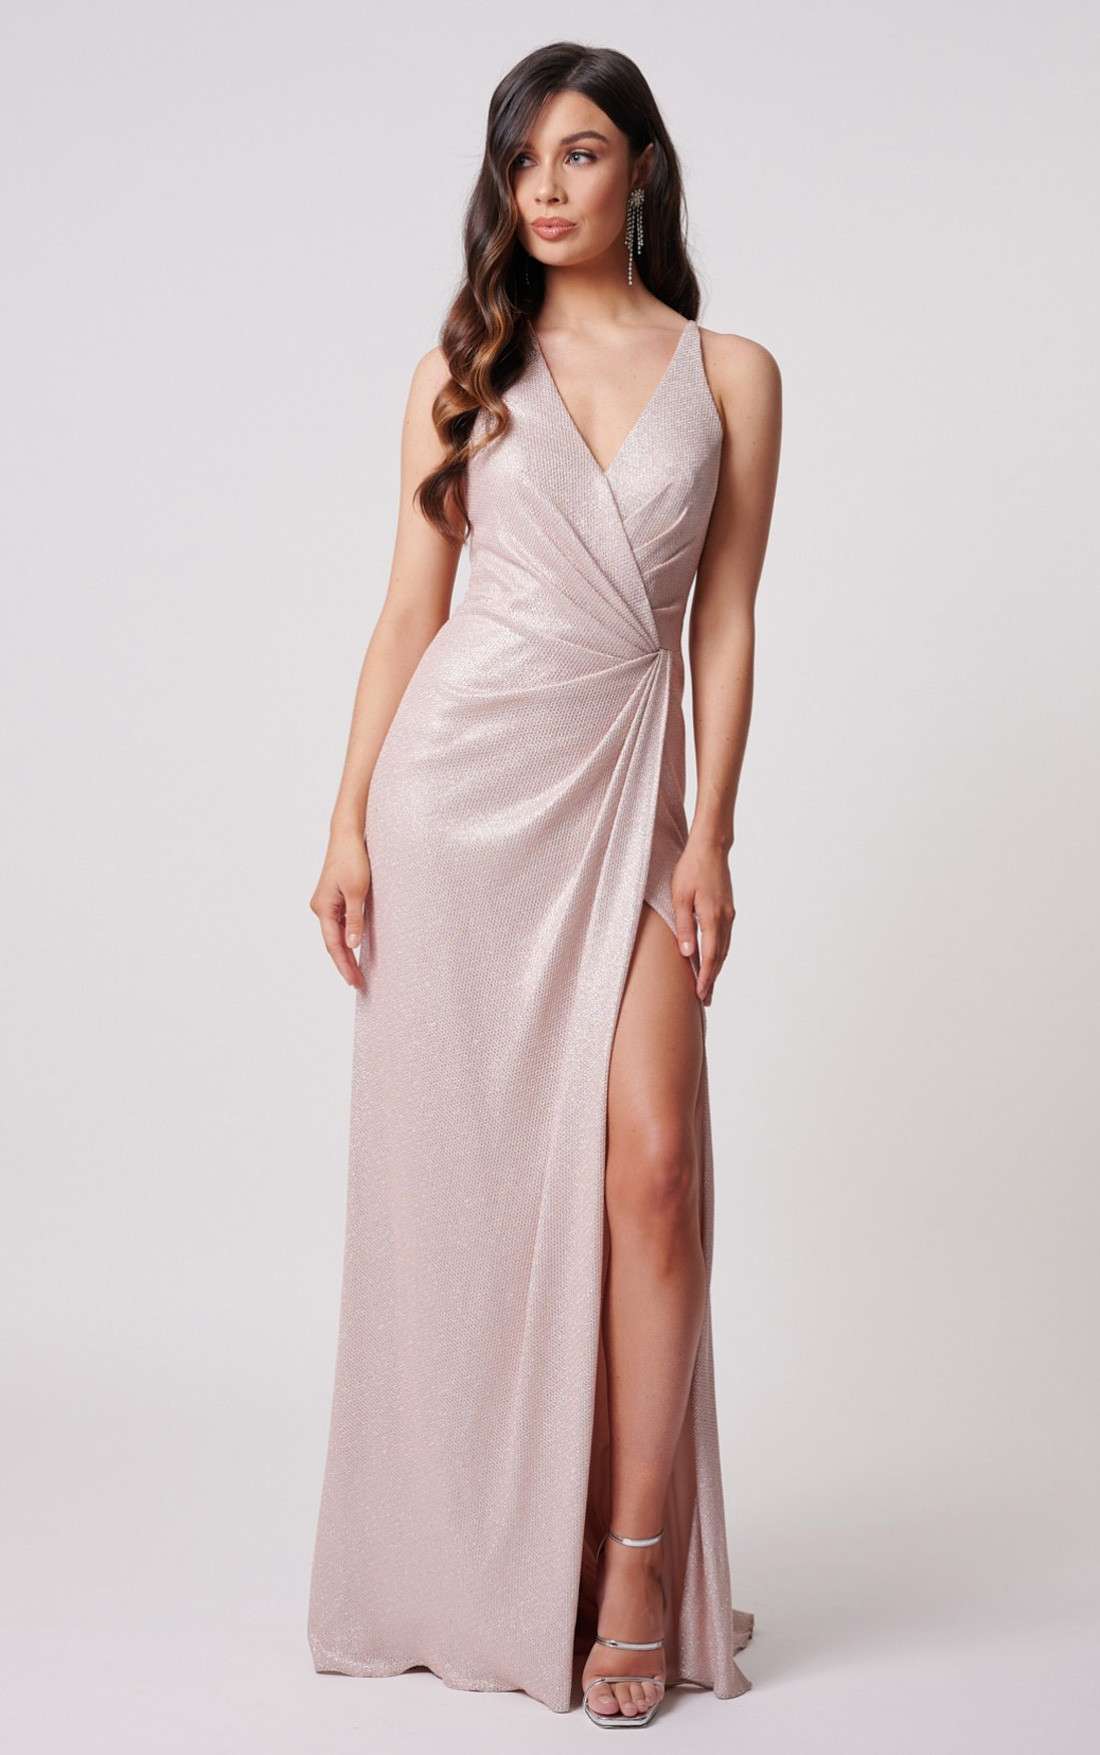 Forever Unique - Odessa Soft Pink Glitter Wrap Maxi Dress With Thigh Split (MN200201)